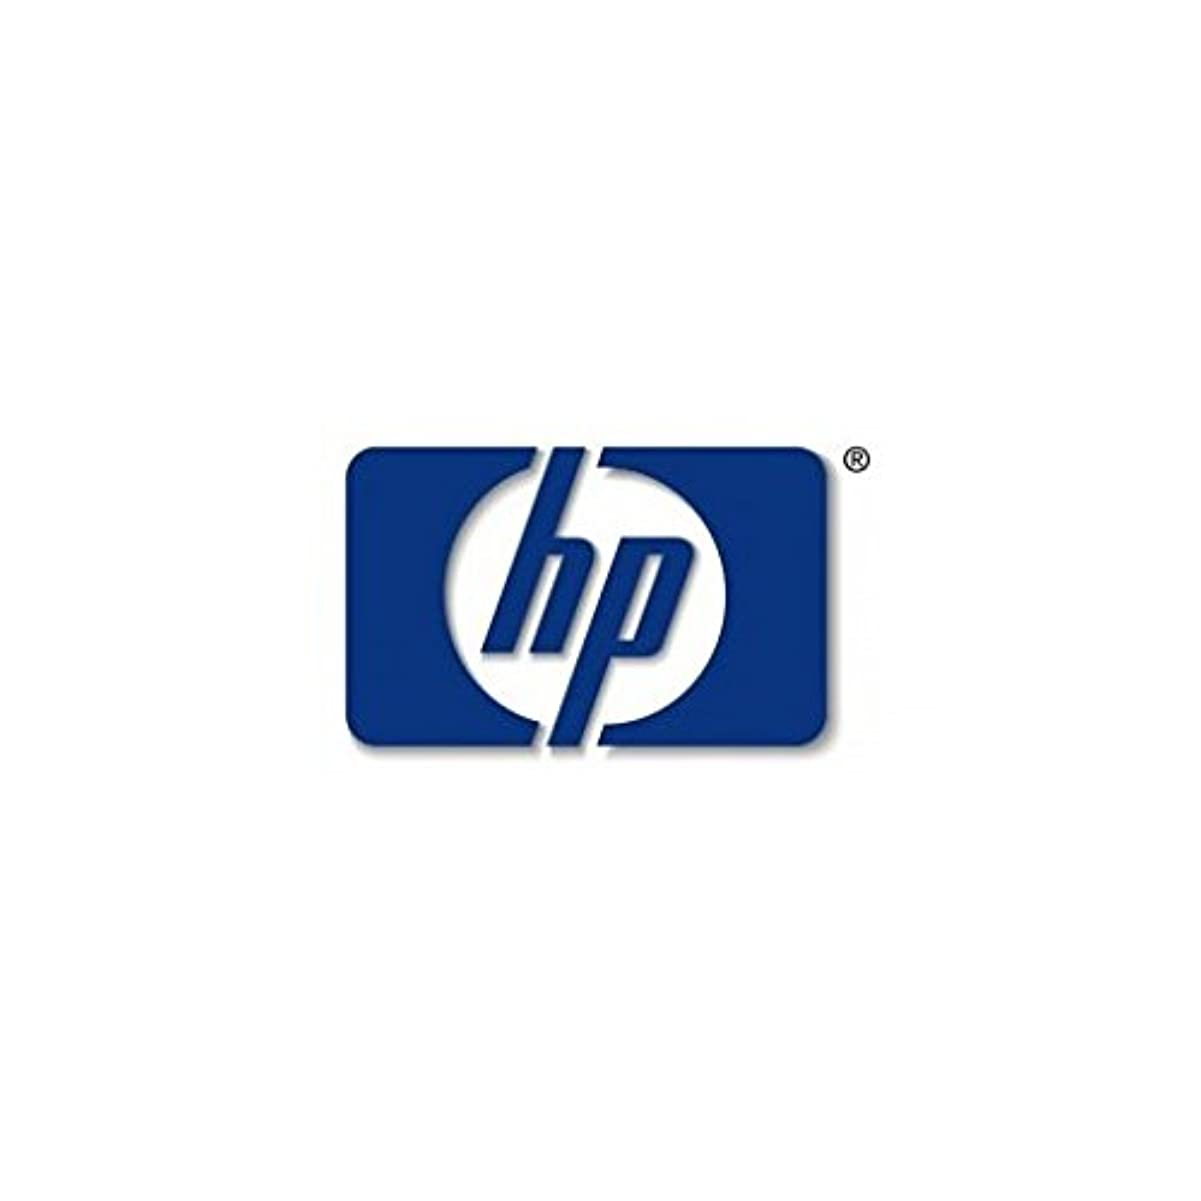 省略する対人怒るrh2 – 5476 – 000 CN – HEWLETT PACKARD (HP)プリンタMiscellaneousパーツ